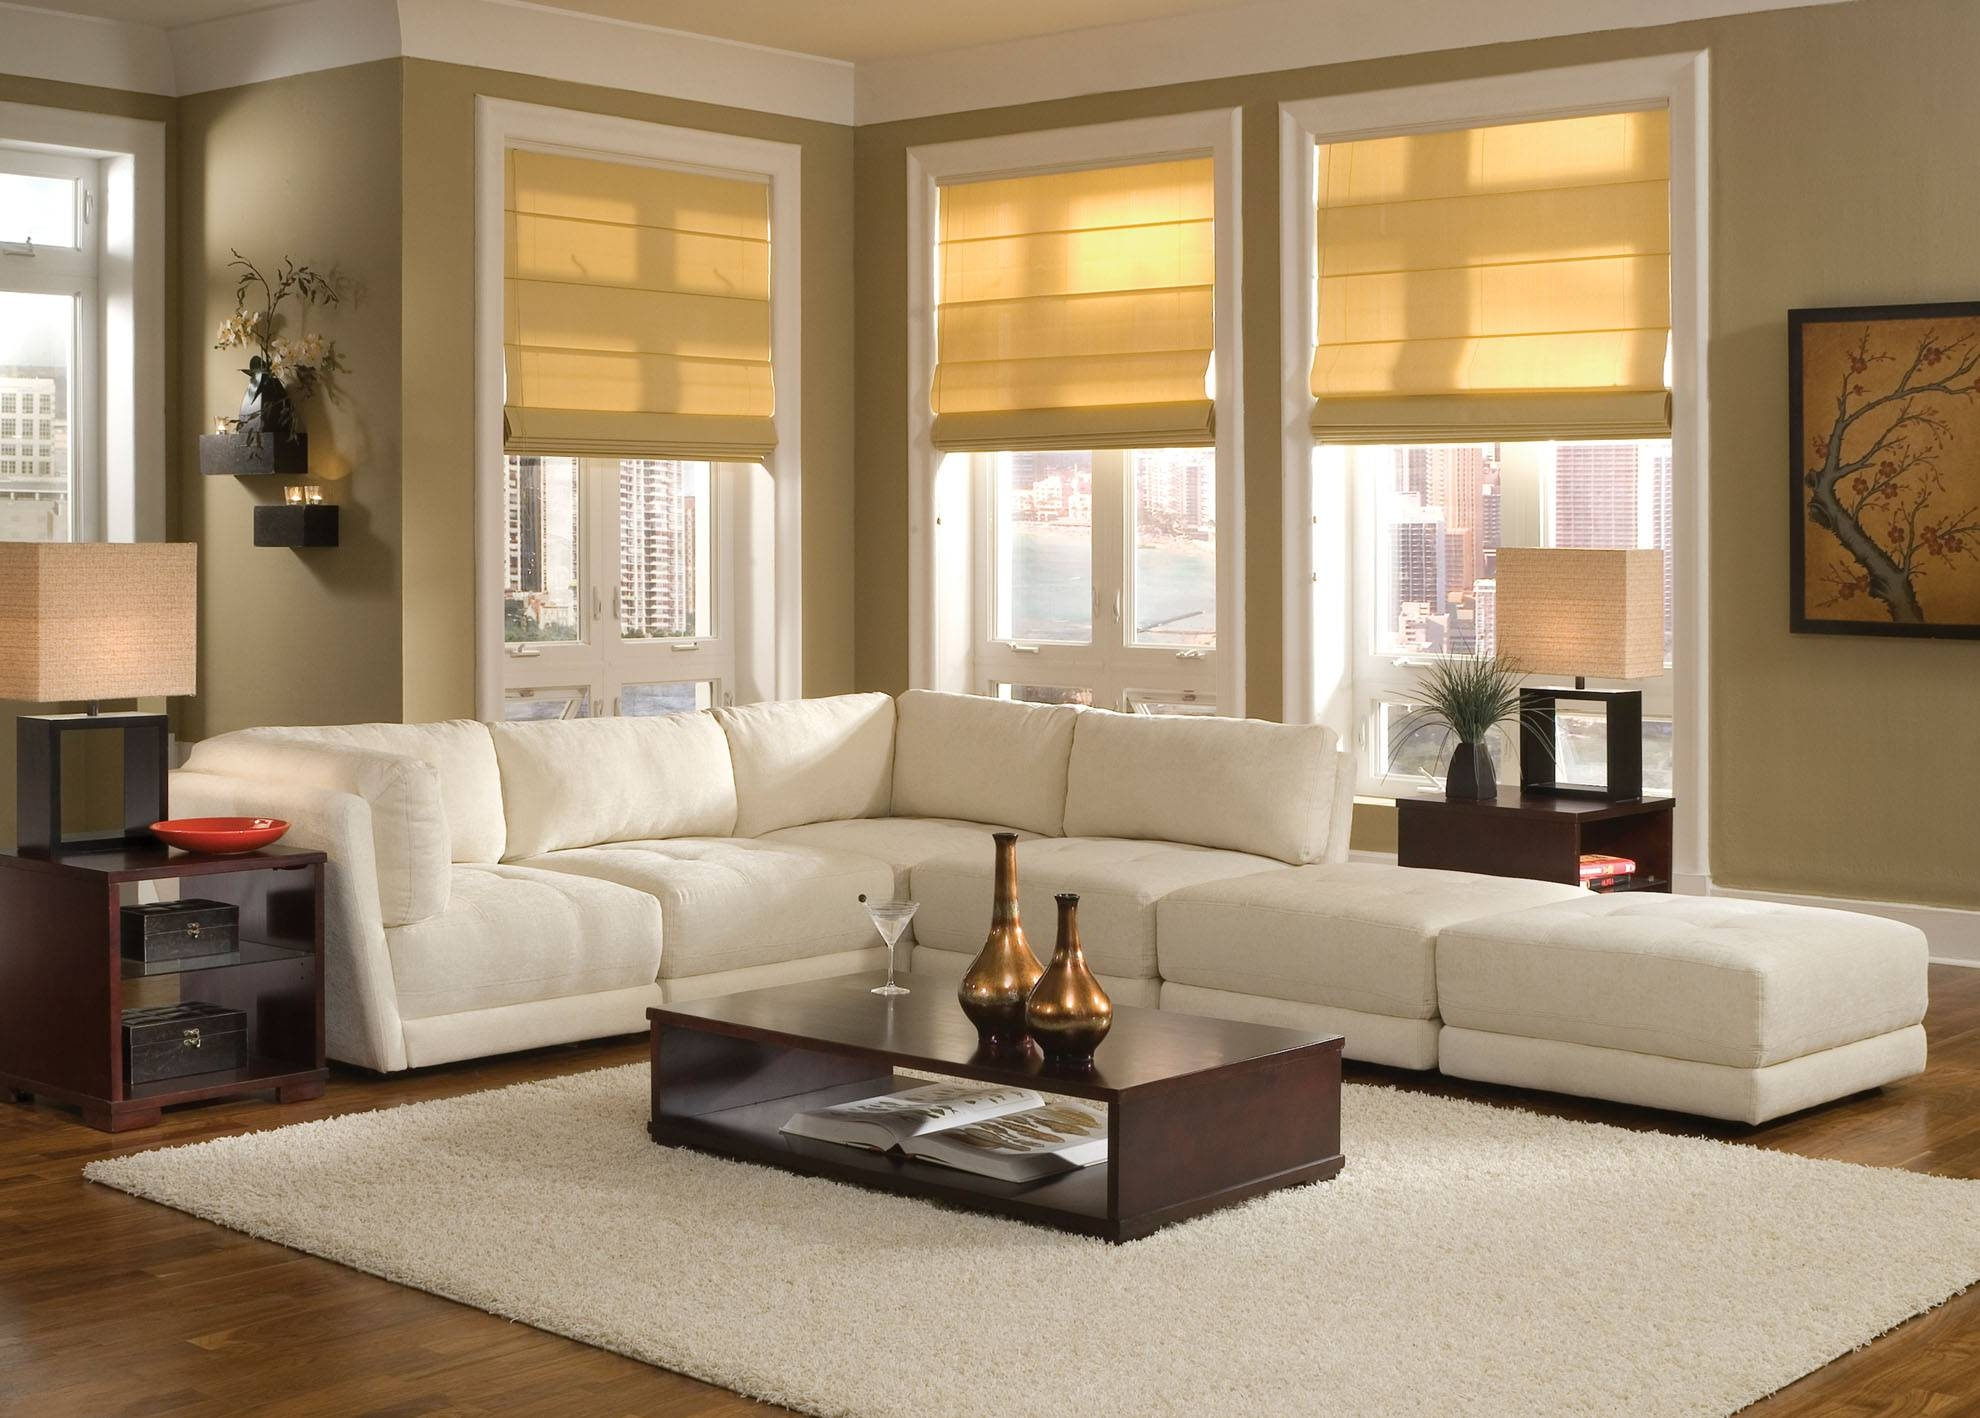 White Sofa Design Ideas & Pictures For Living Room within Decorating With A Sectional Sofa (Image 30 of 30)